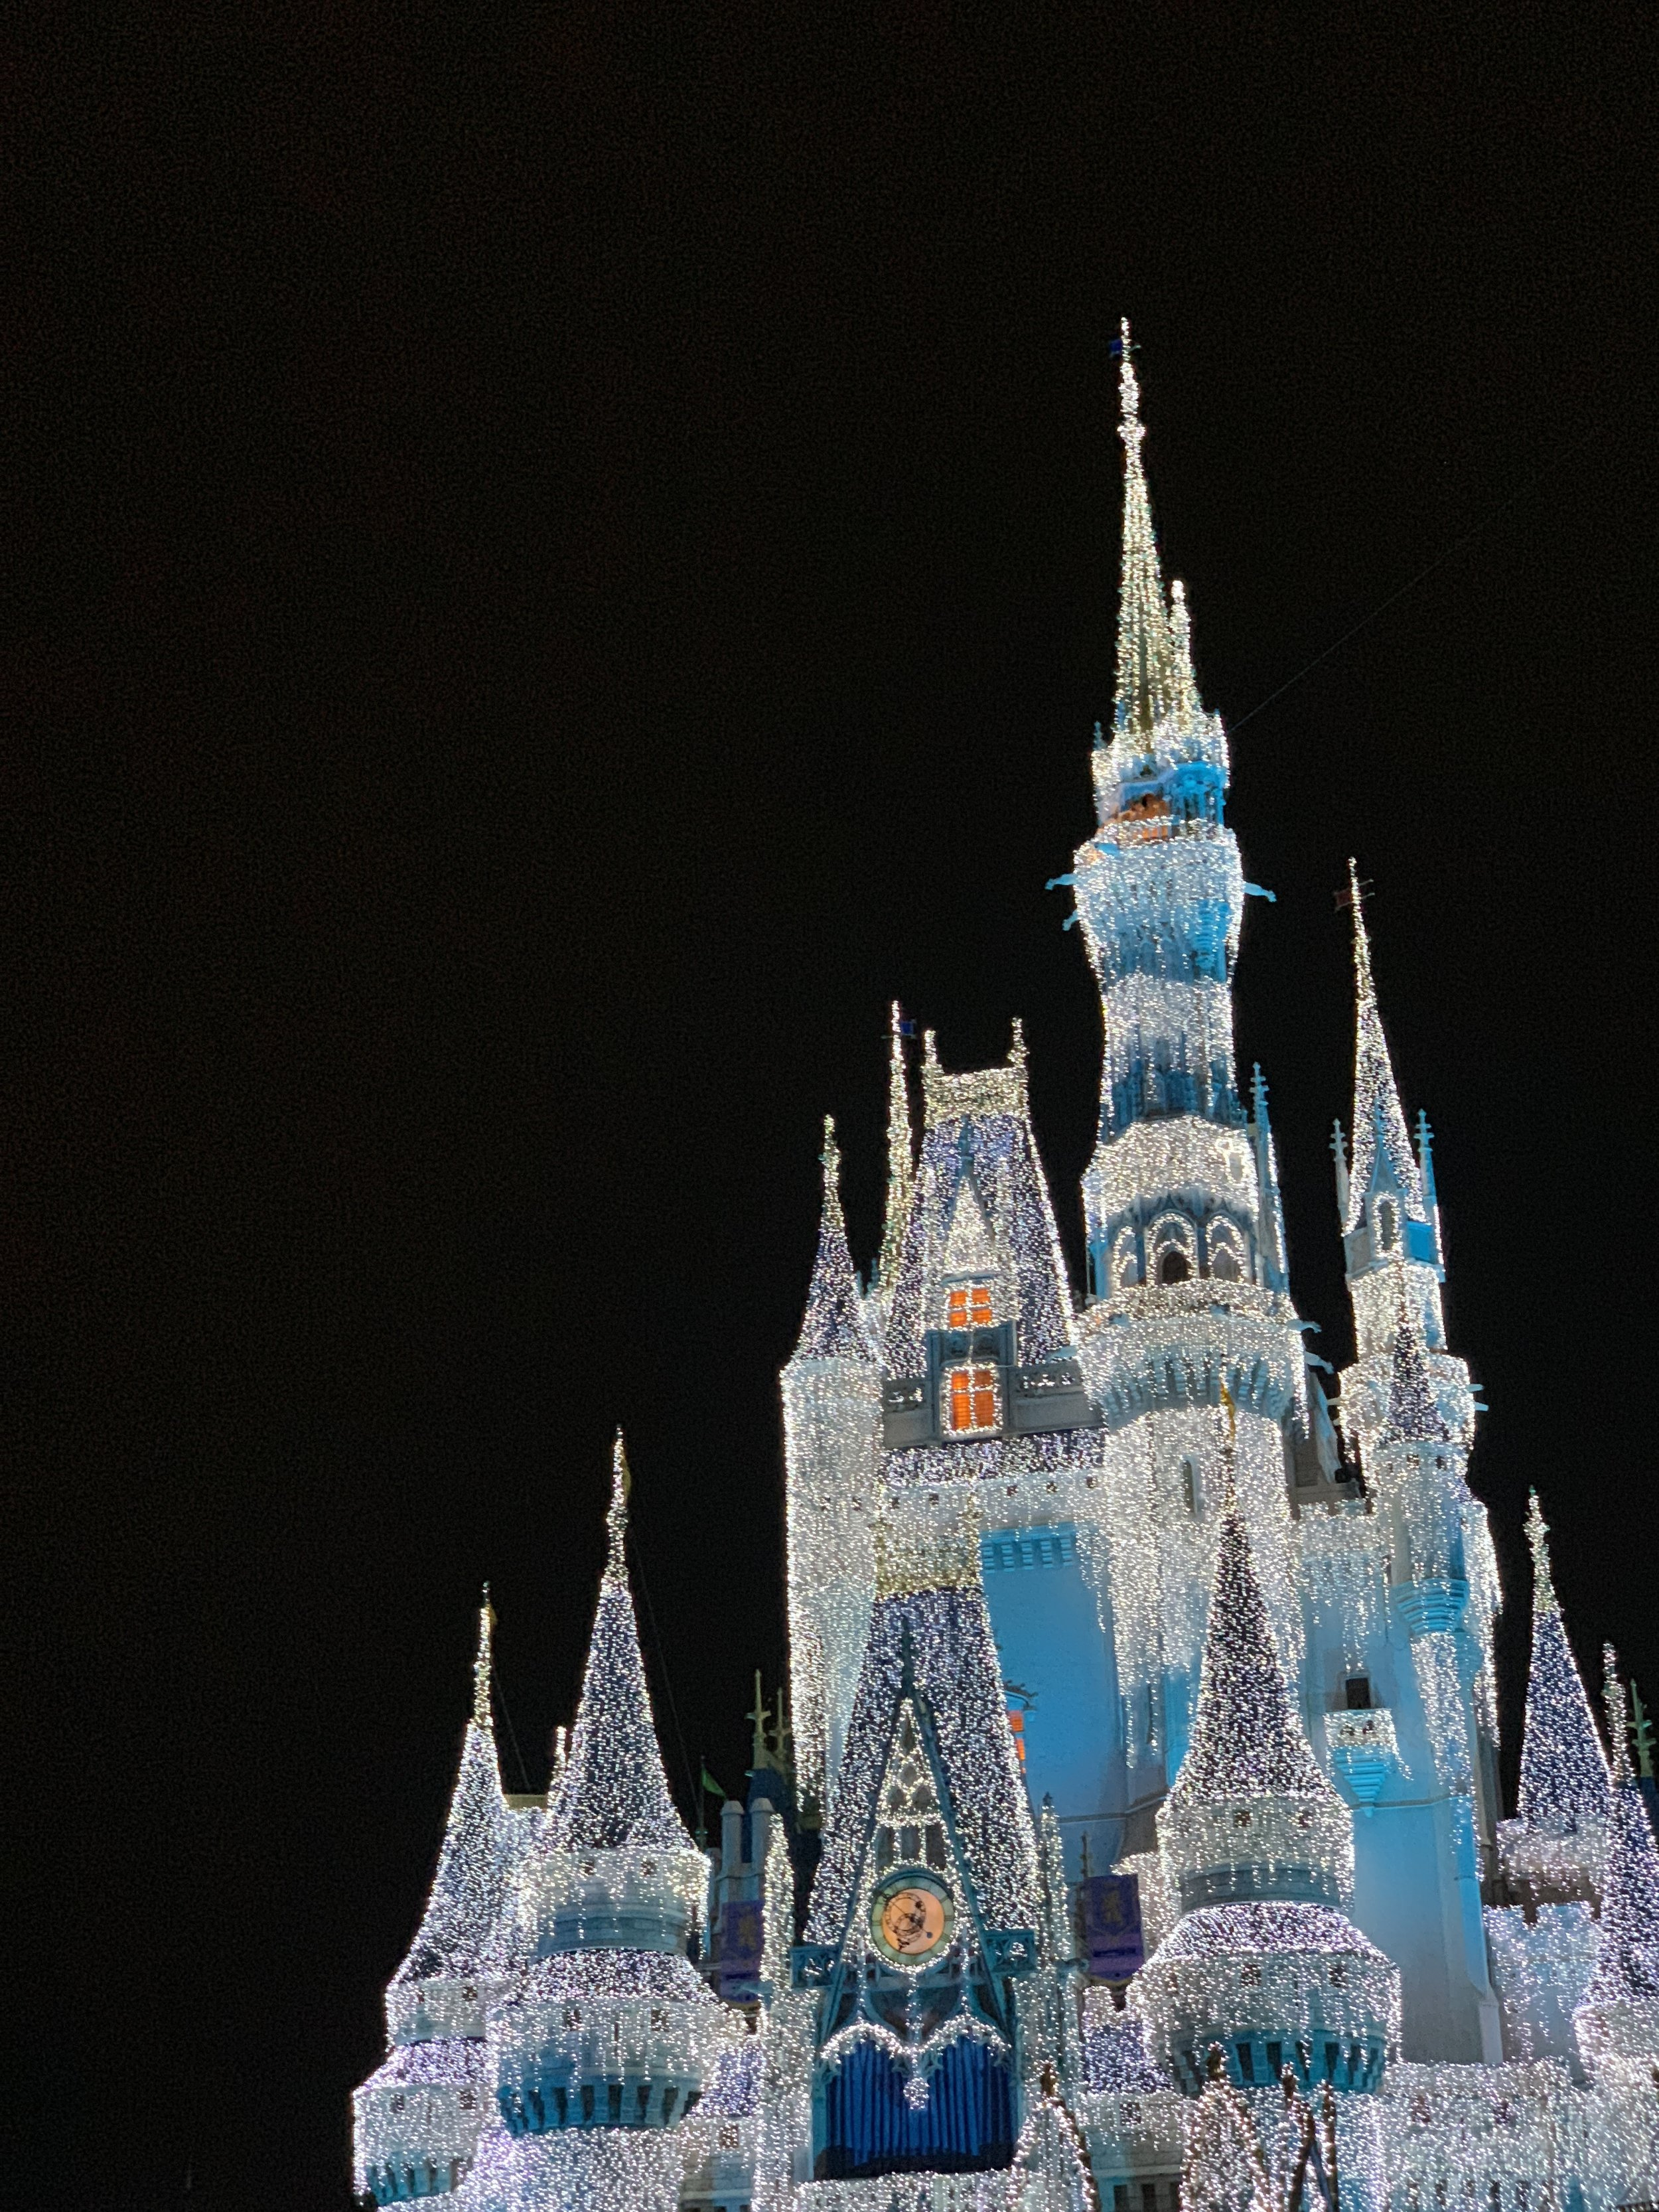 The gorgeous icy castle.